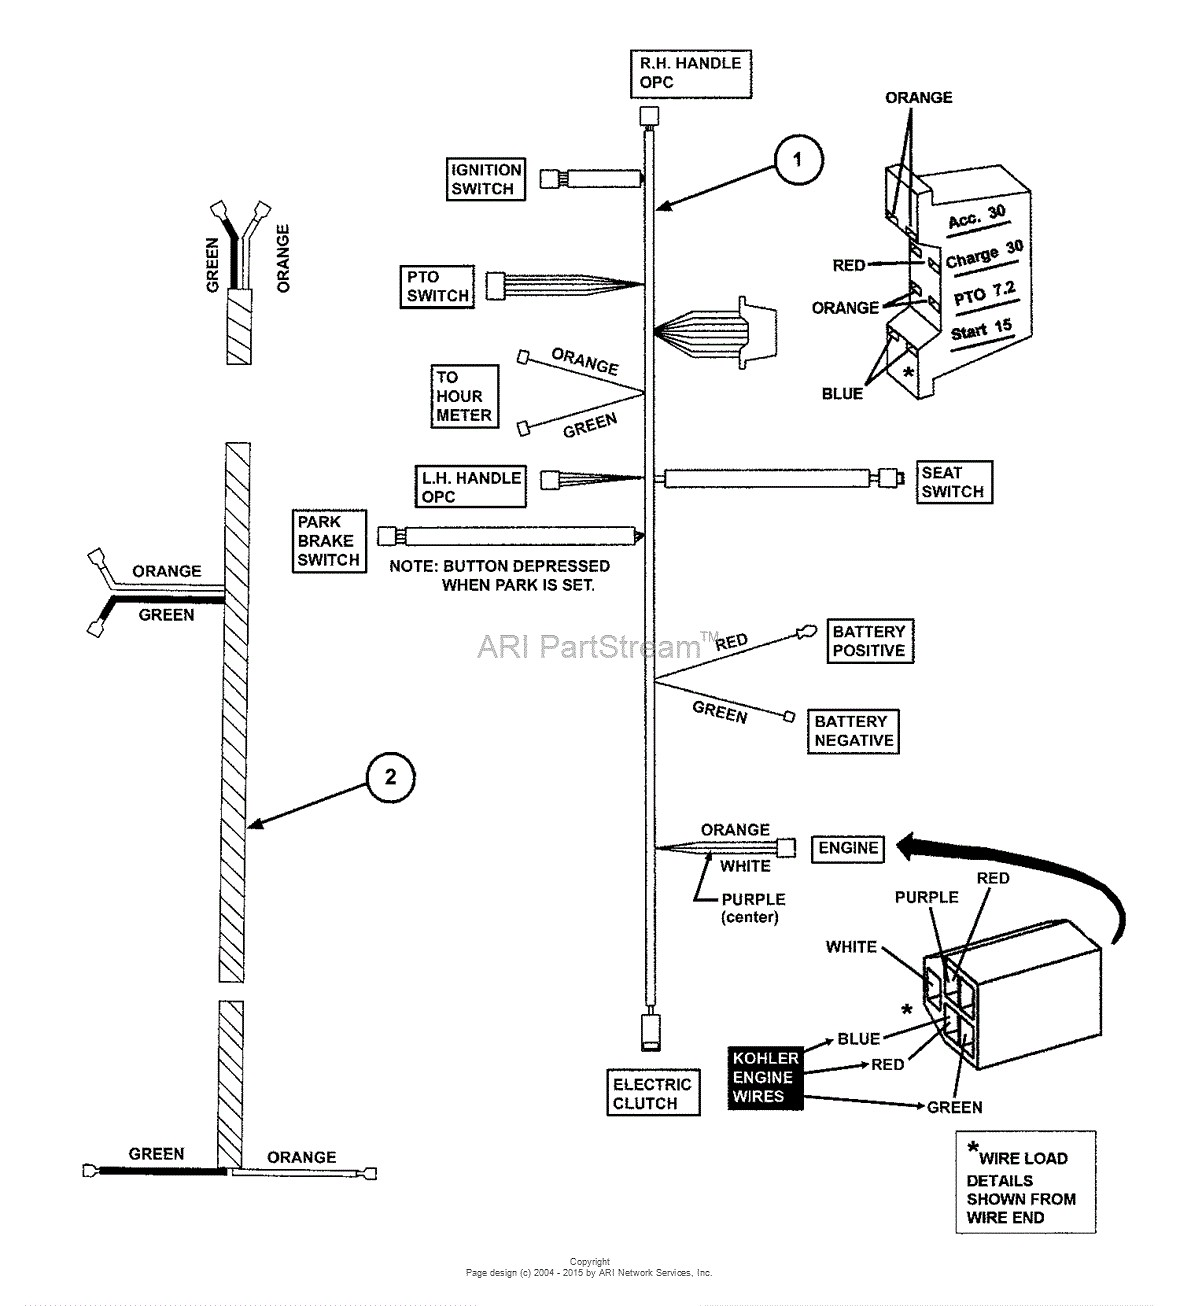 25 Hp Kohler Engine Wiring Schematic - Wiring Diagram Schemas